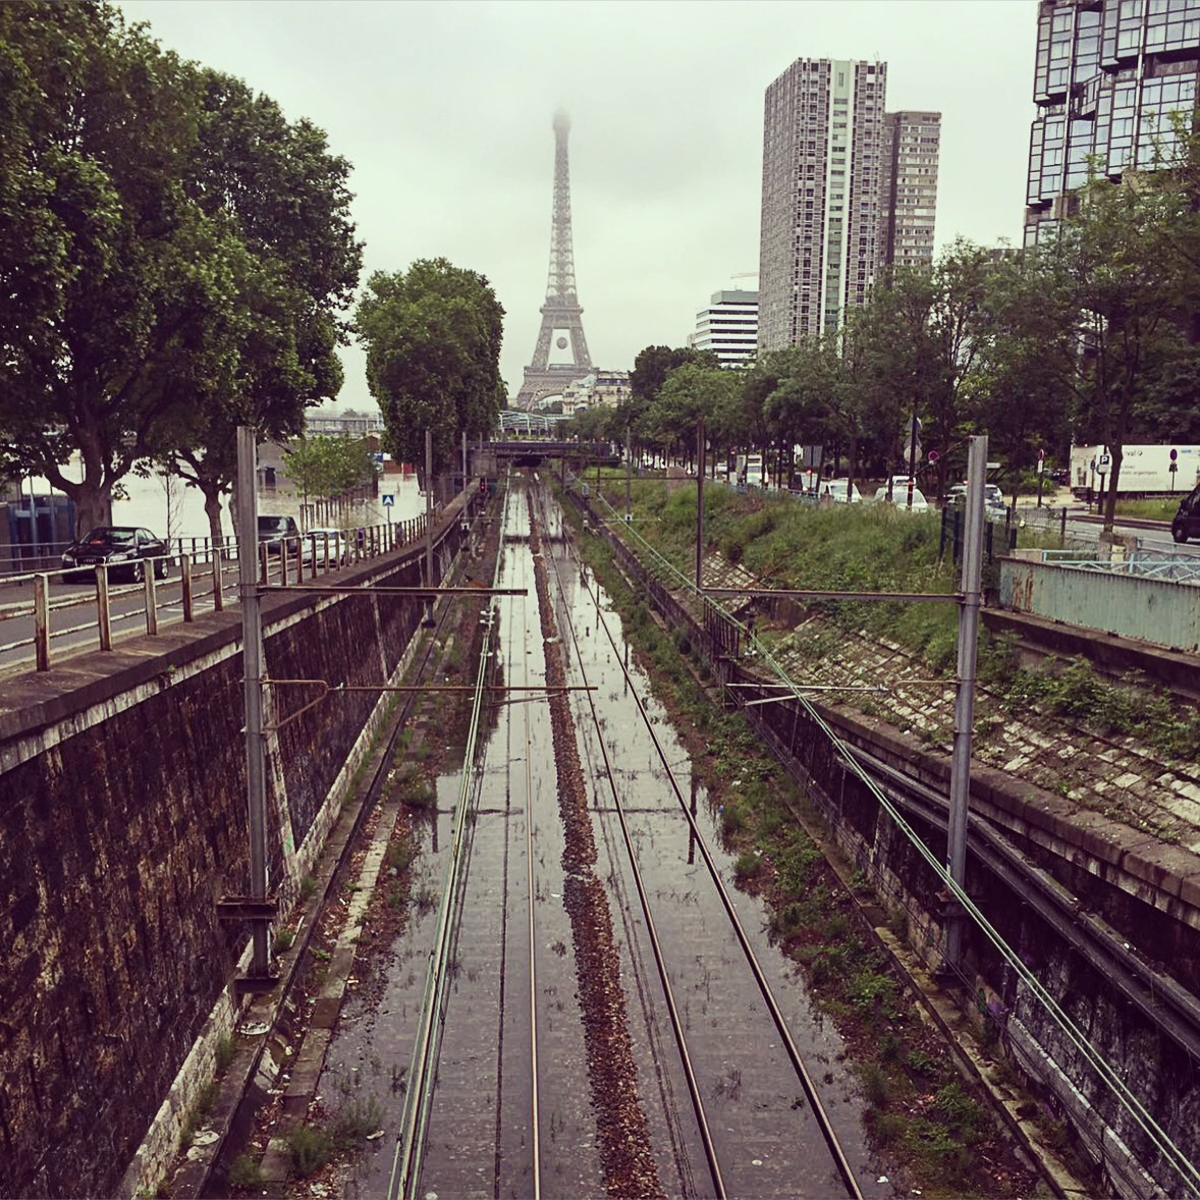 Flood in Paris, Train tracks in water.